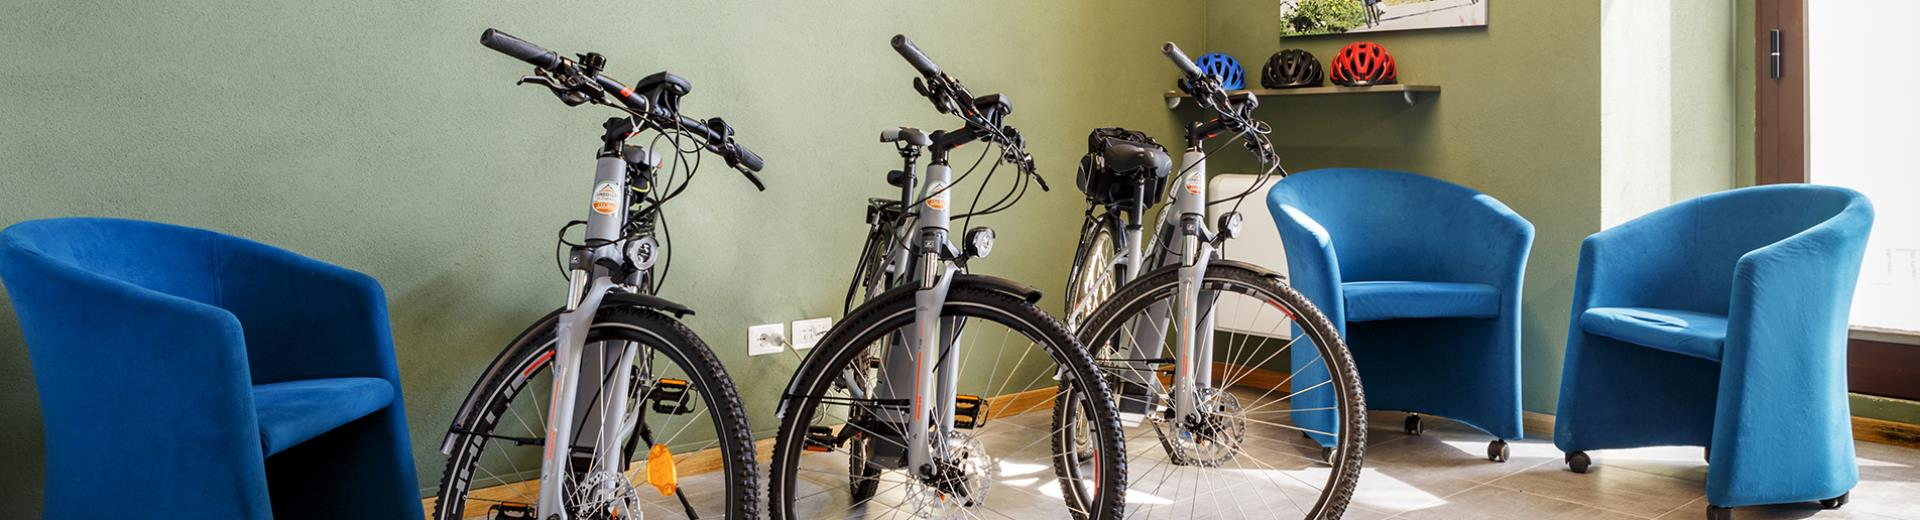 Bike Services Cuneo-Best Western Hotel Royal Superga Cuneo